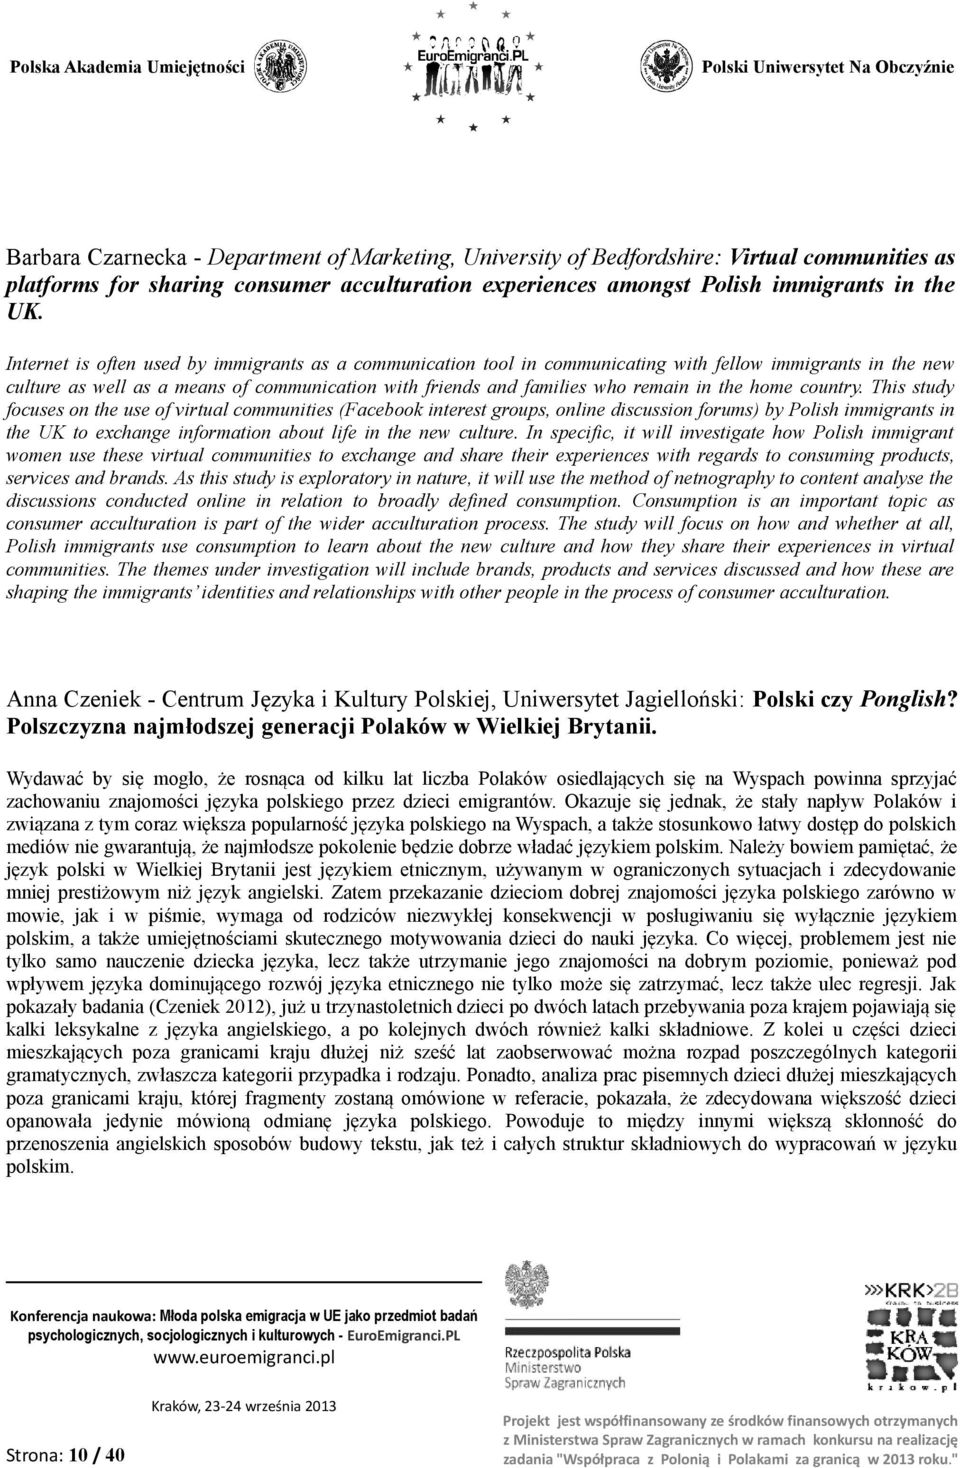 home country.